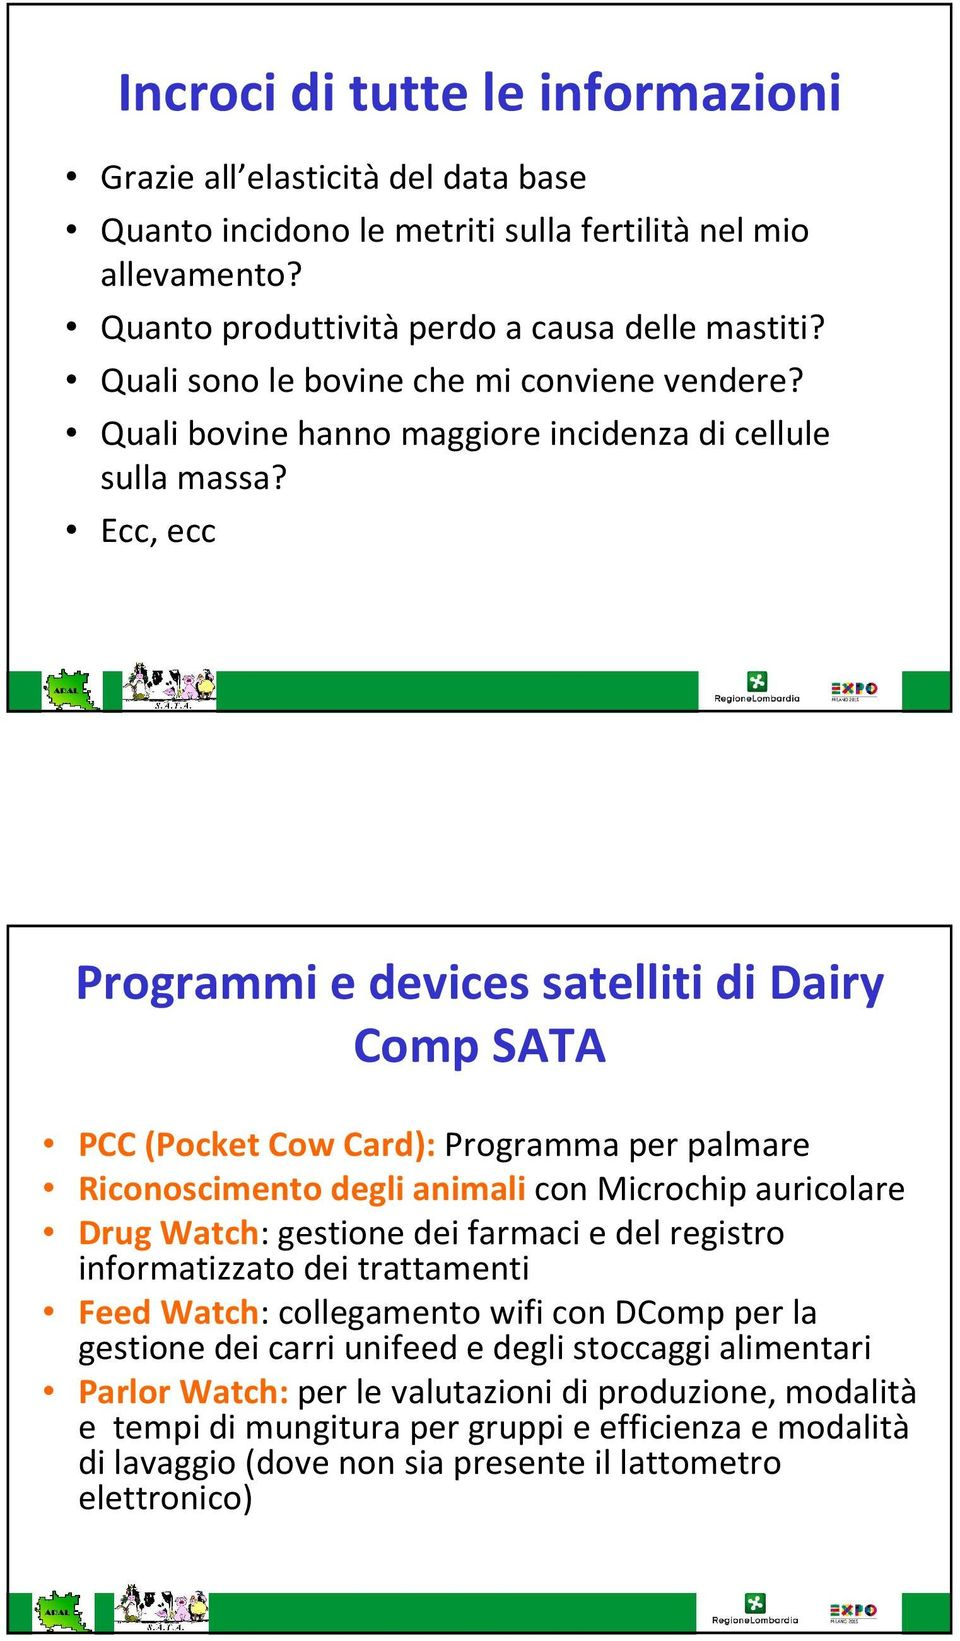 Ecc, ecc Programmie devices satellitididairy Comp SATA PCC (Pocket Cow Card): Programma per palmare Riconoscimento degli animali con Microchip auricolare Drug Watch: gestione dei farmaci e del